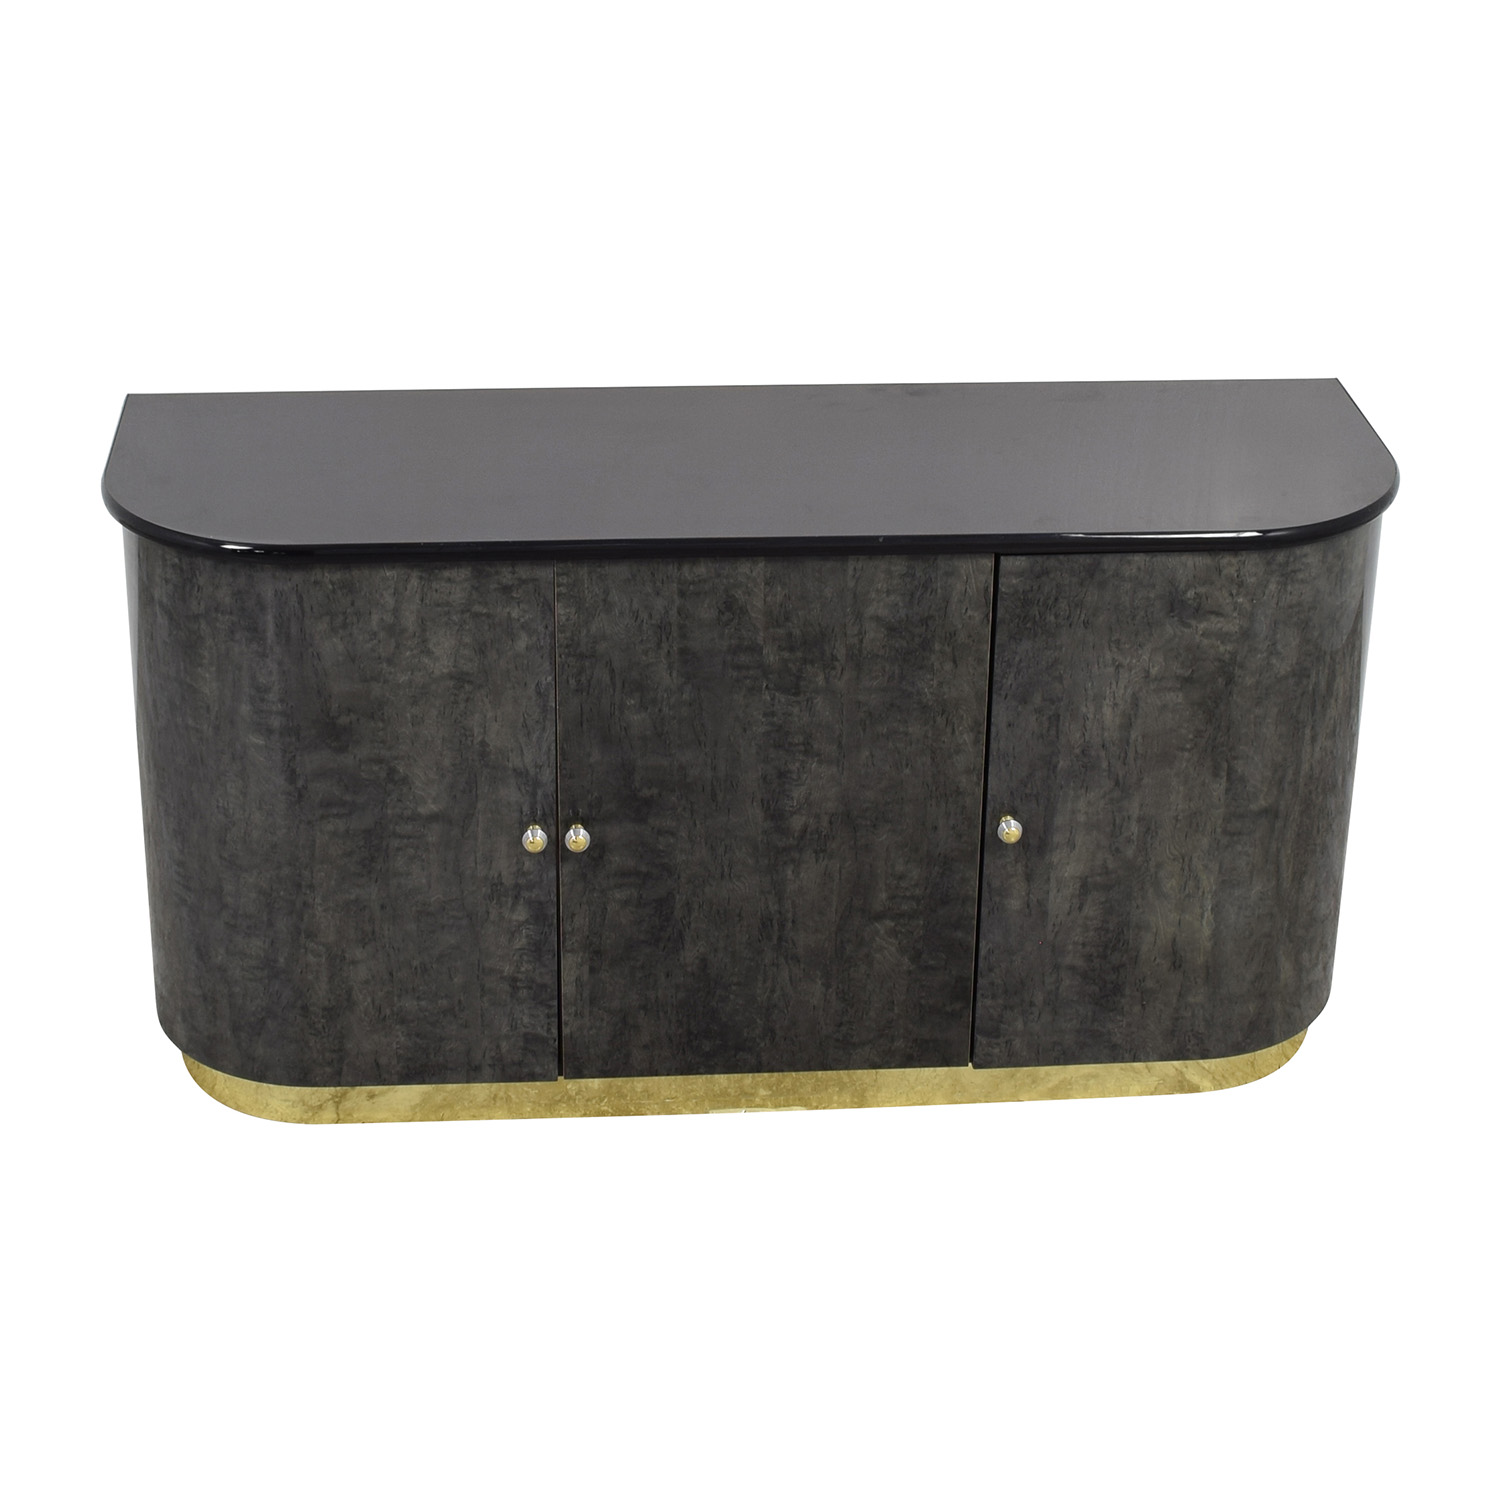 Black Dining Room Cabinet with Gold Accents dimensions